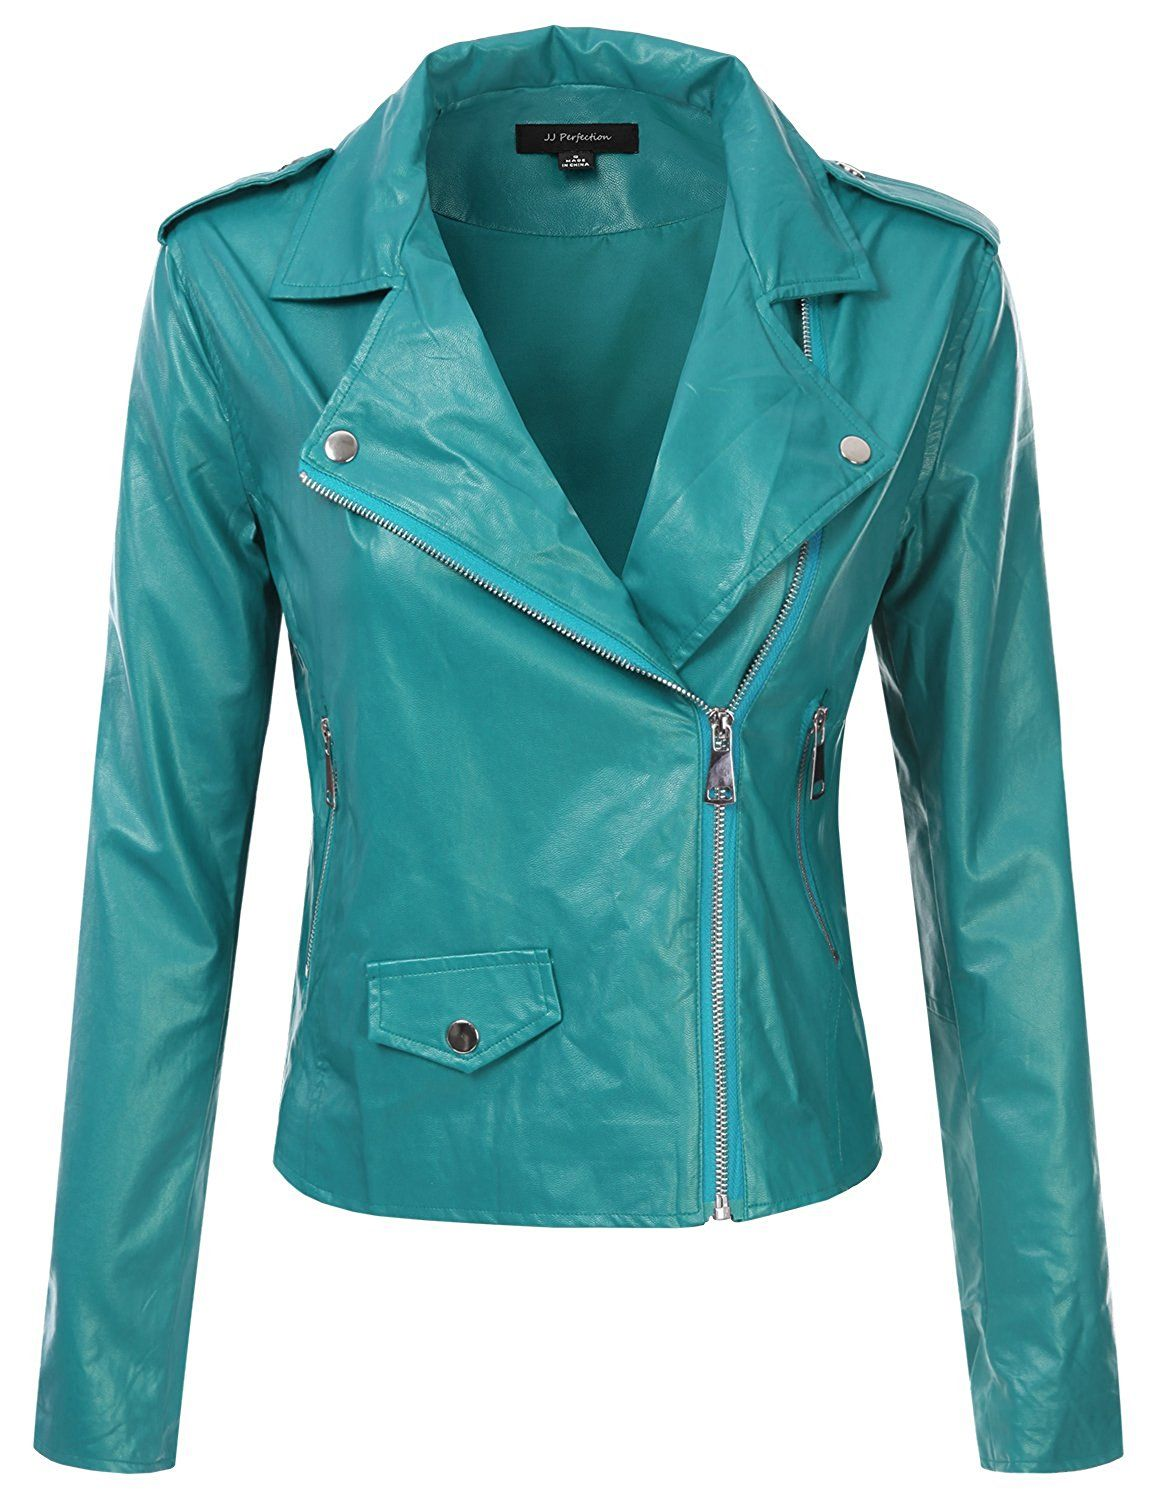 JJ Perfection Women's Solid Long Sleeve Faux Leather